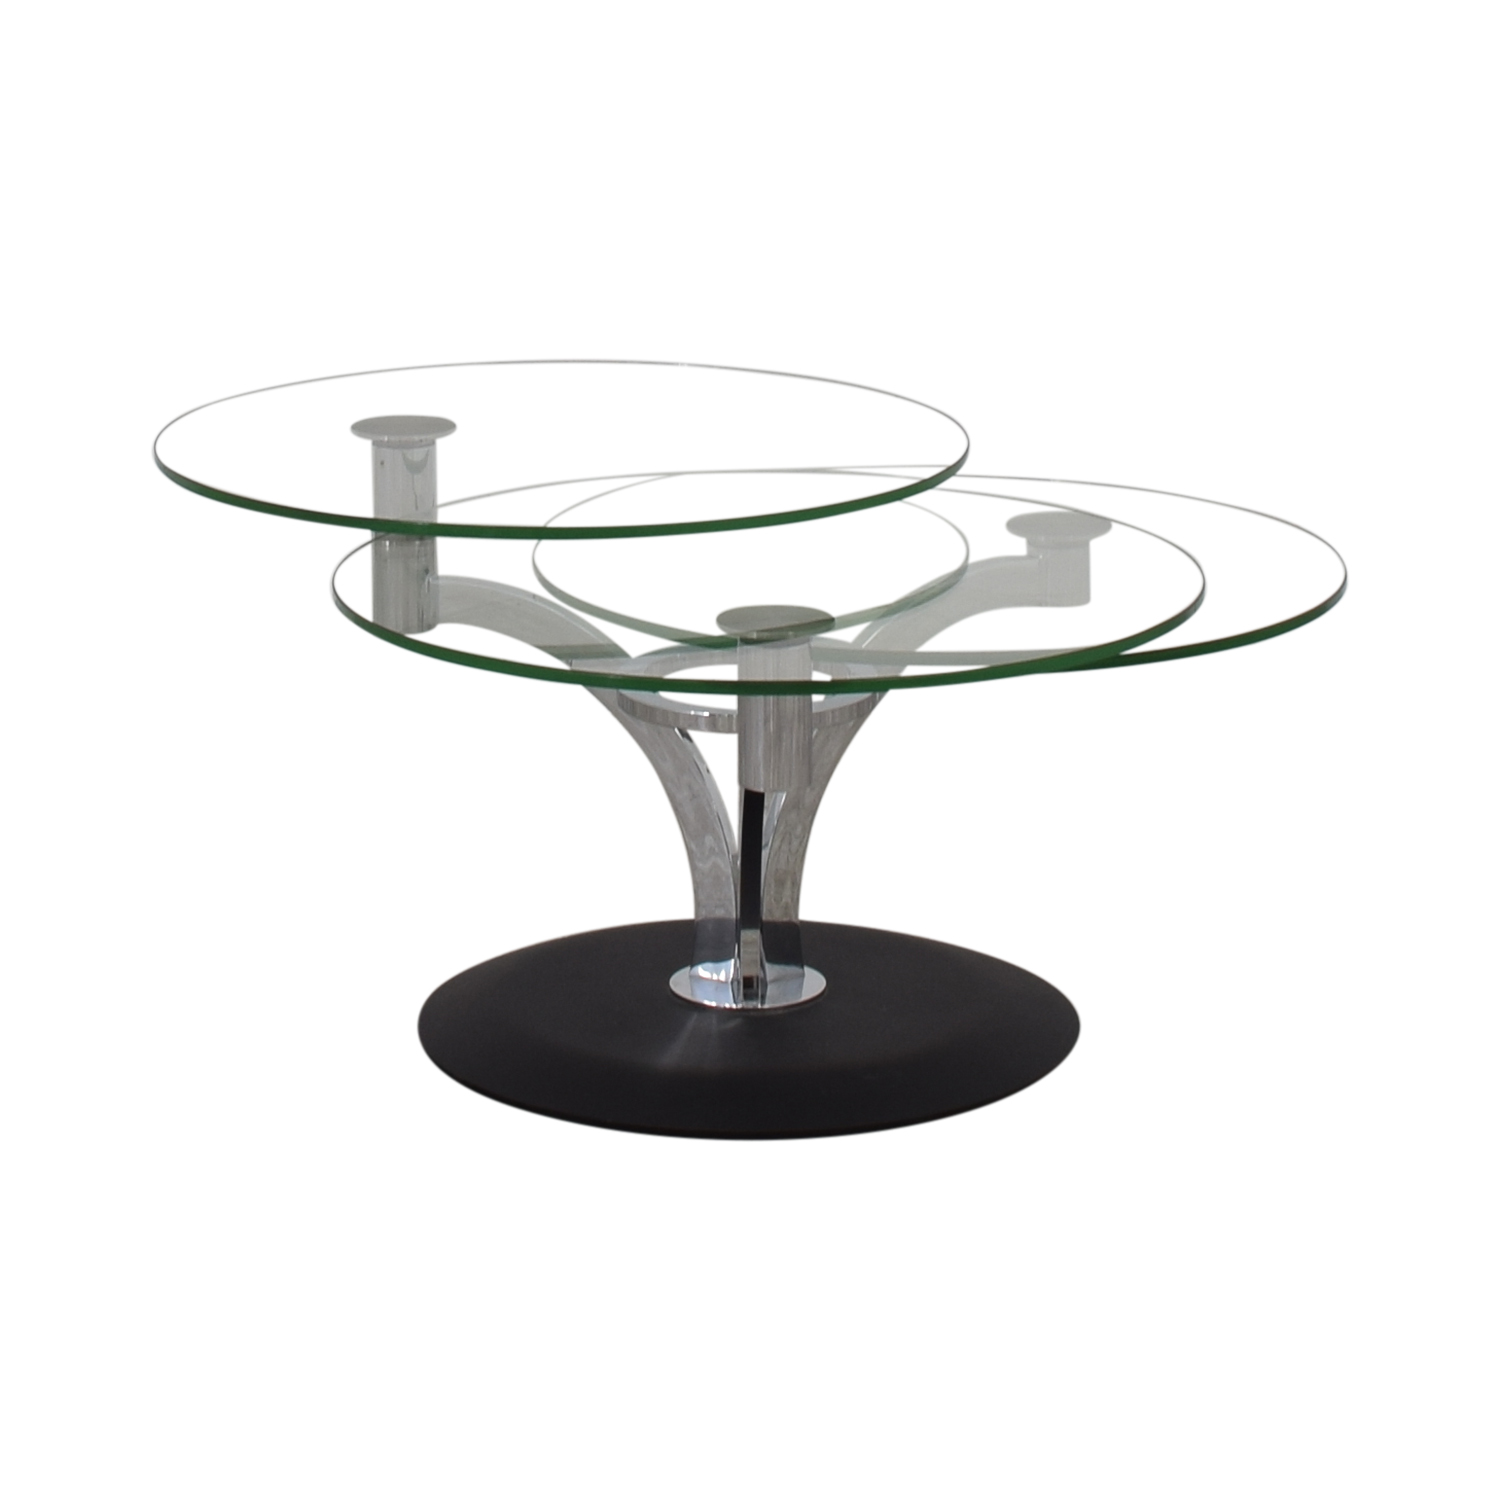 shop Naos Naos Trillo Glass Coffee Table online